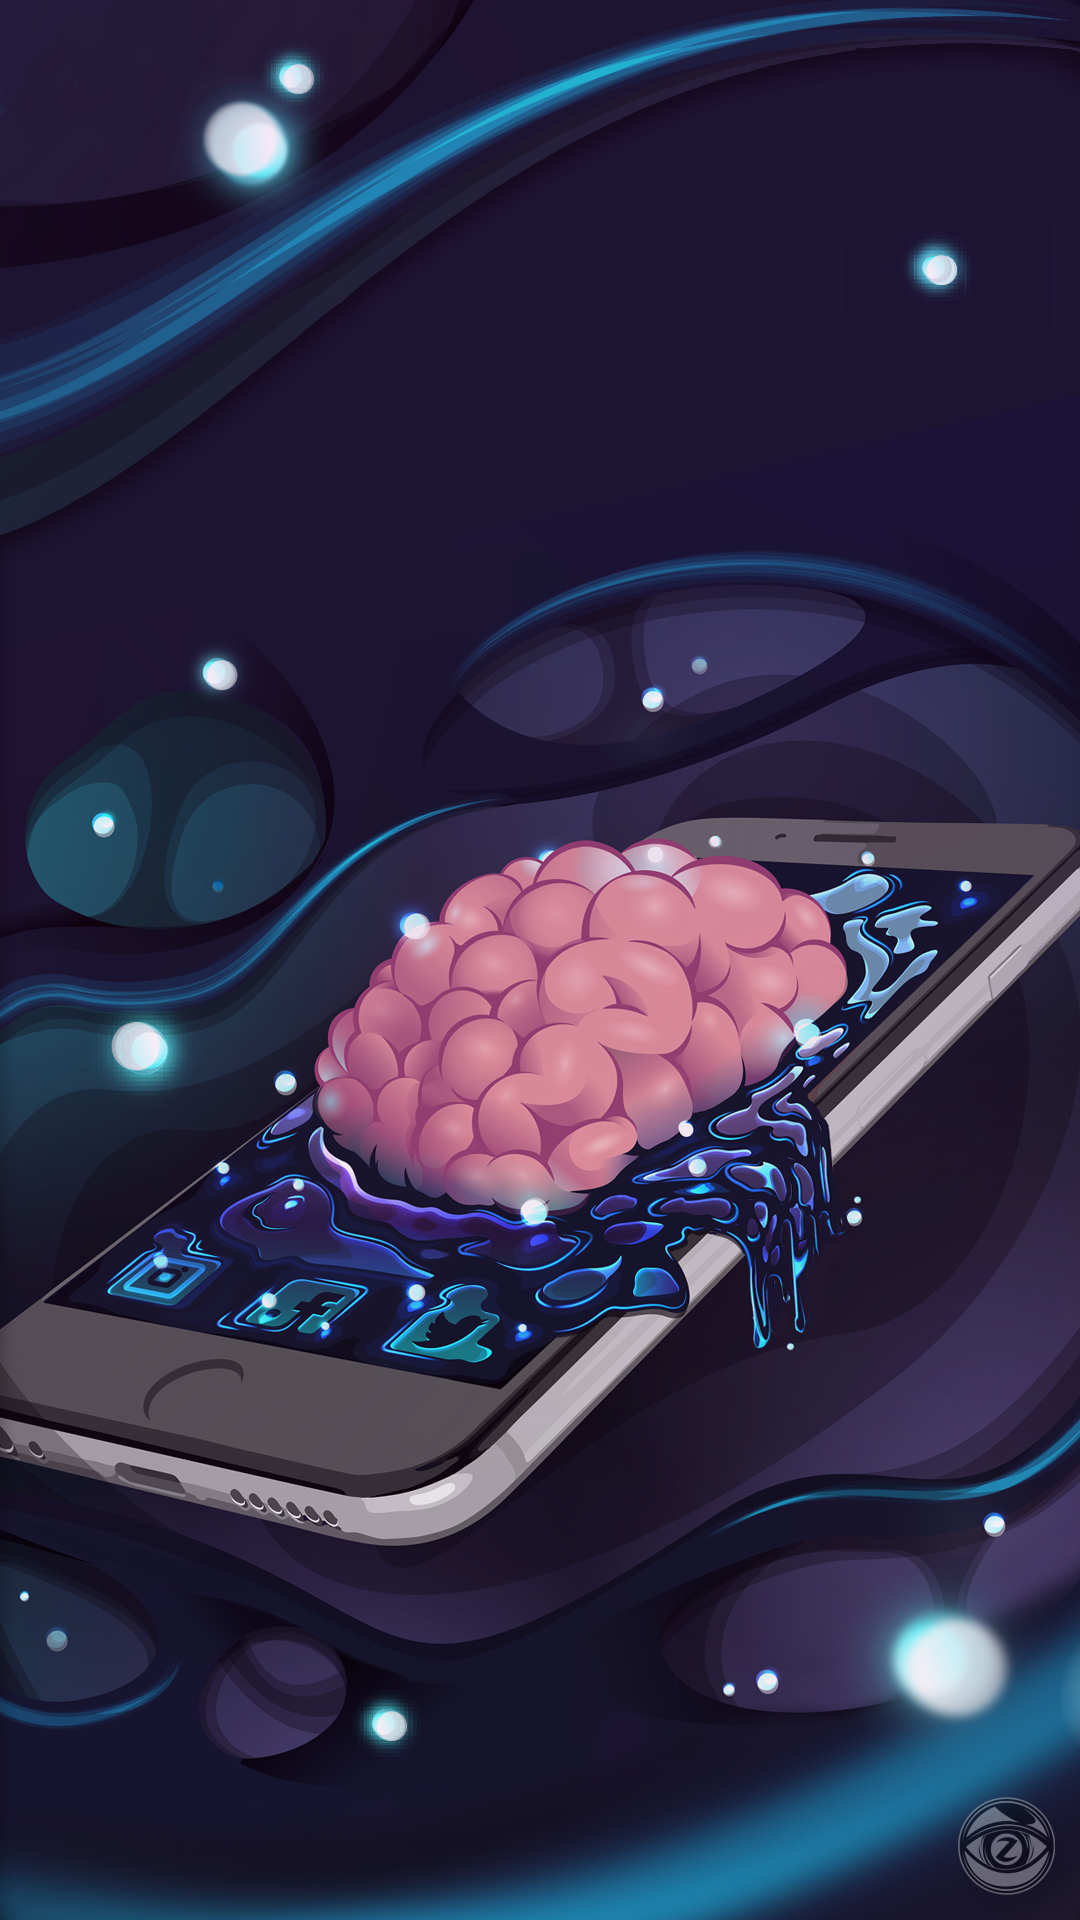 Brain Wallpaper Android The Best Hd Wallpaper